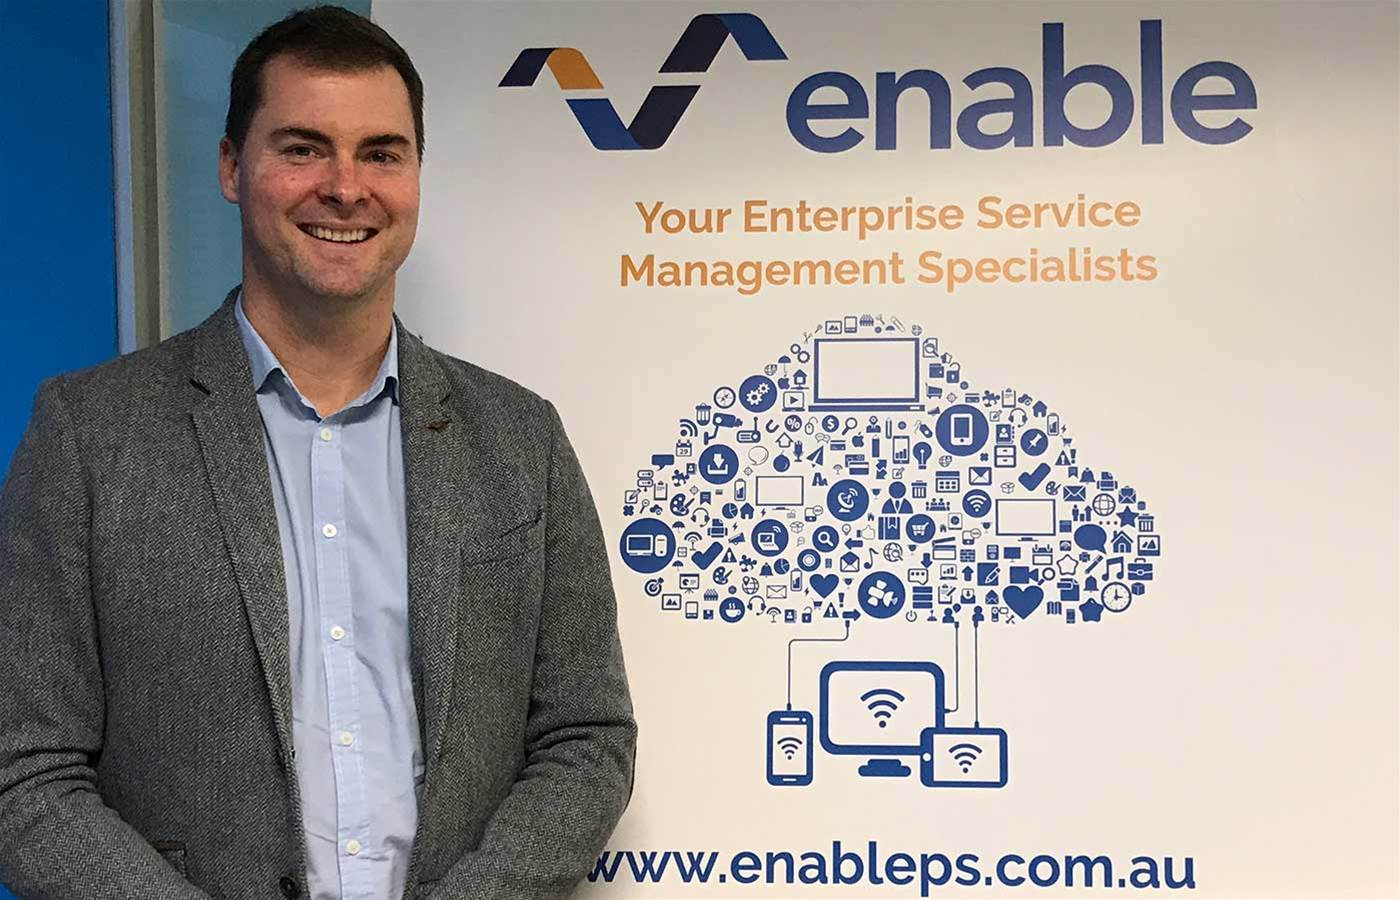 ServiceNow specialist Enable Professional Services lands at No.8 in the 2017 CRN Fast50